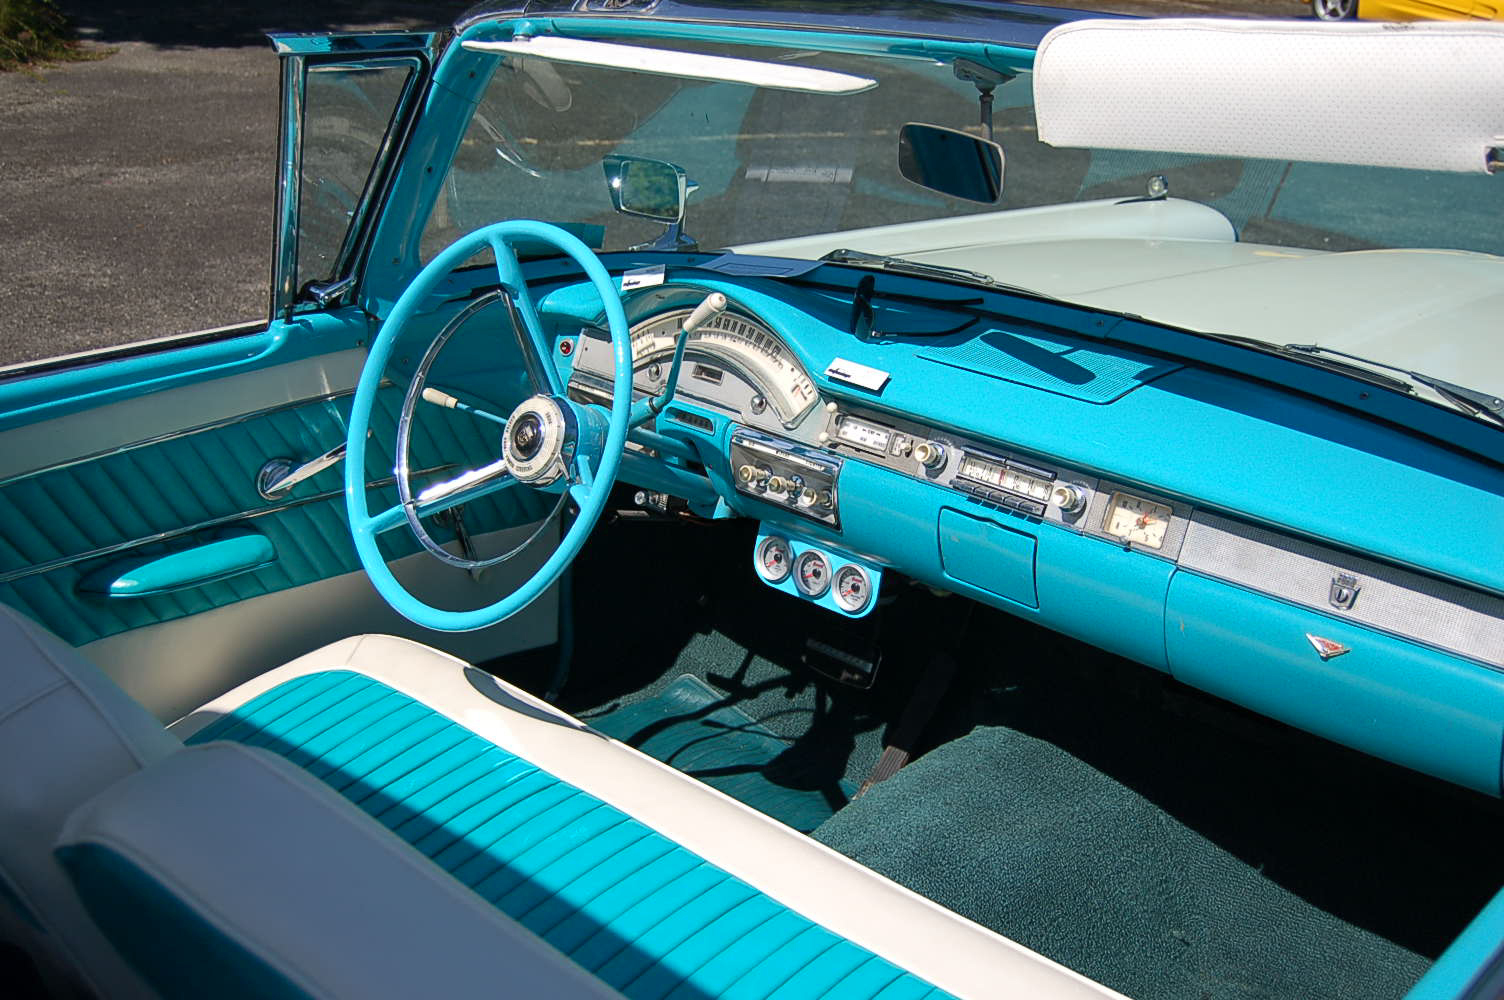 1958 Ford Fairlane Retractable Hardtop Photos And Specs From 1957 Top Wiring Diagram Beautifully Restored With Gulfstream Blue Upholstery